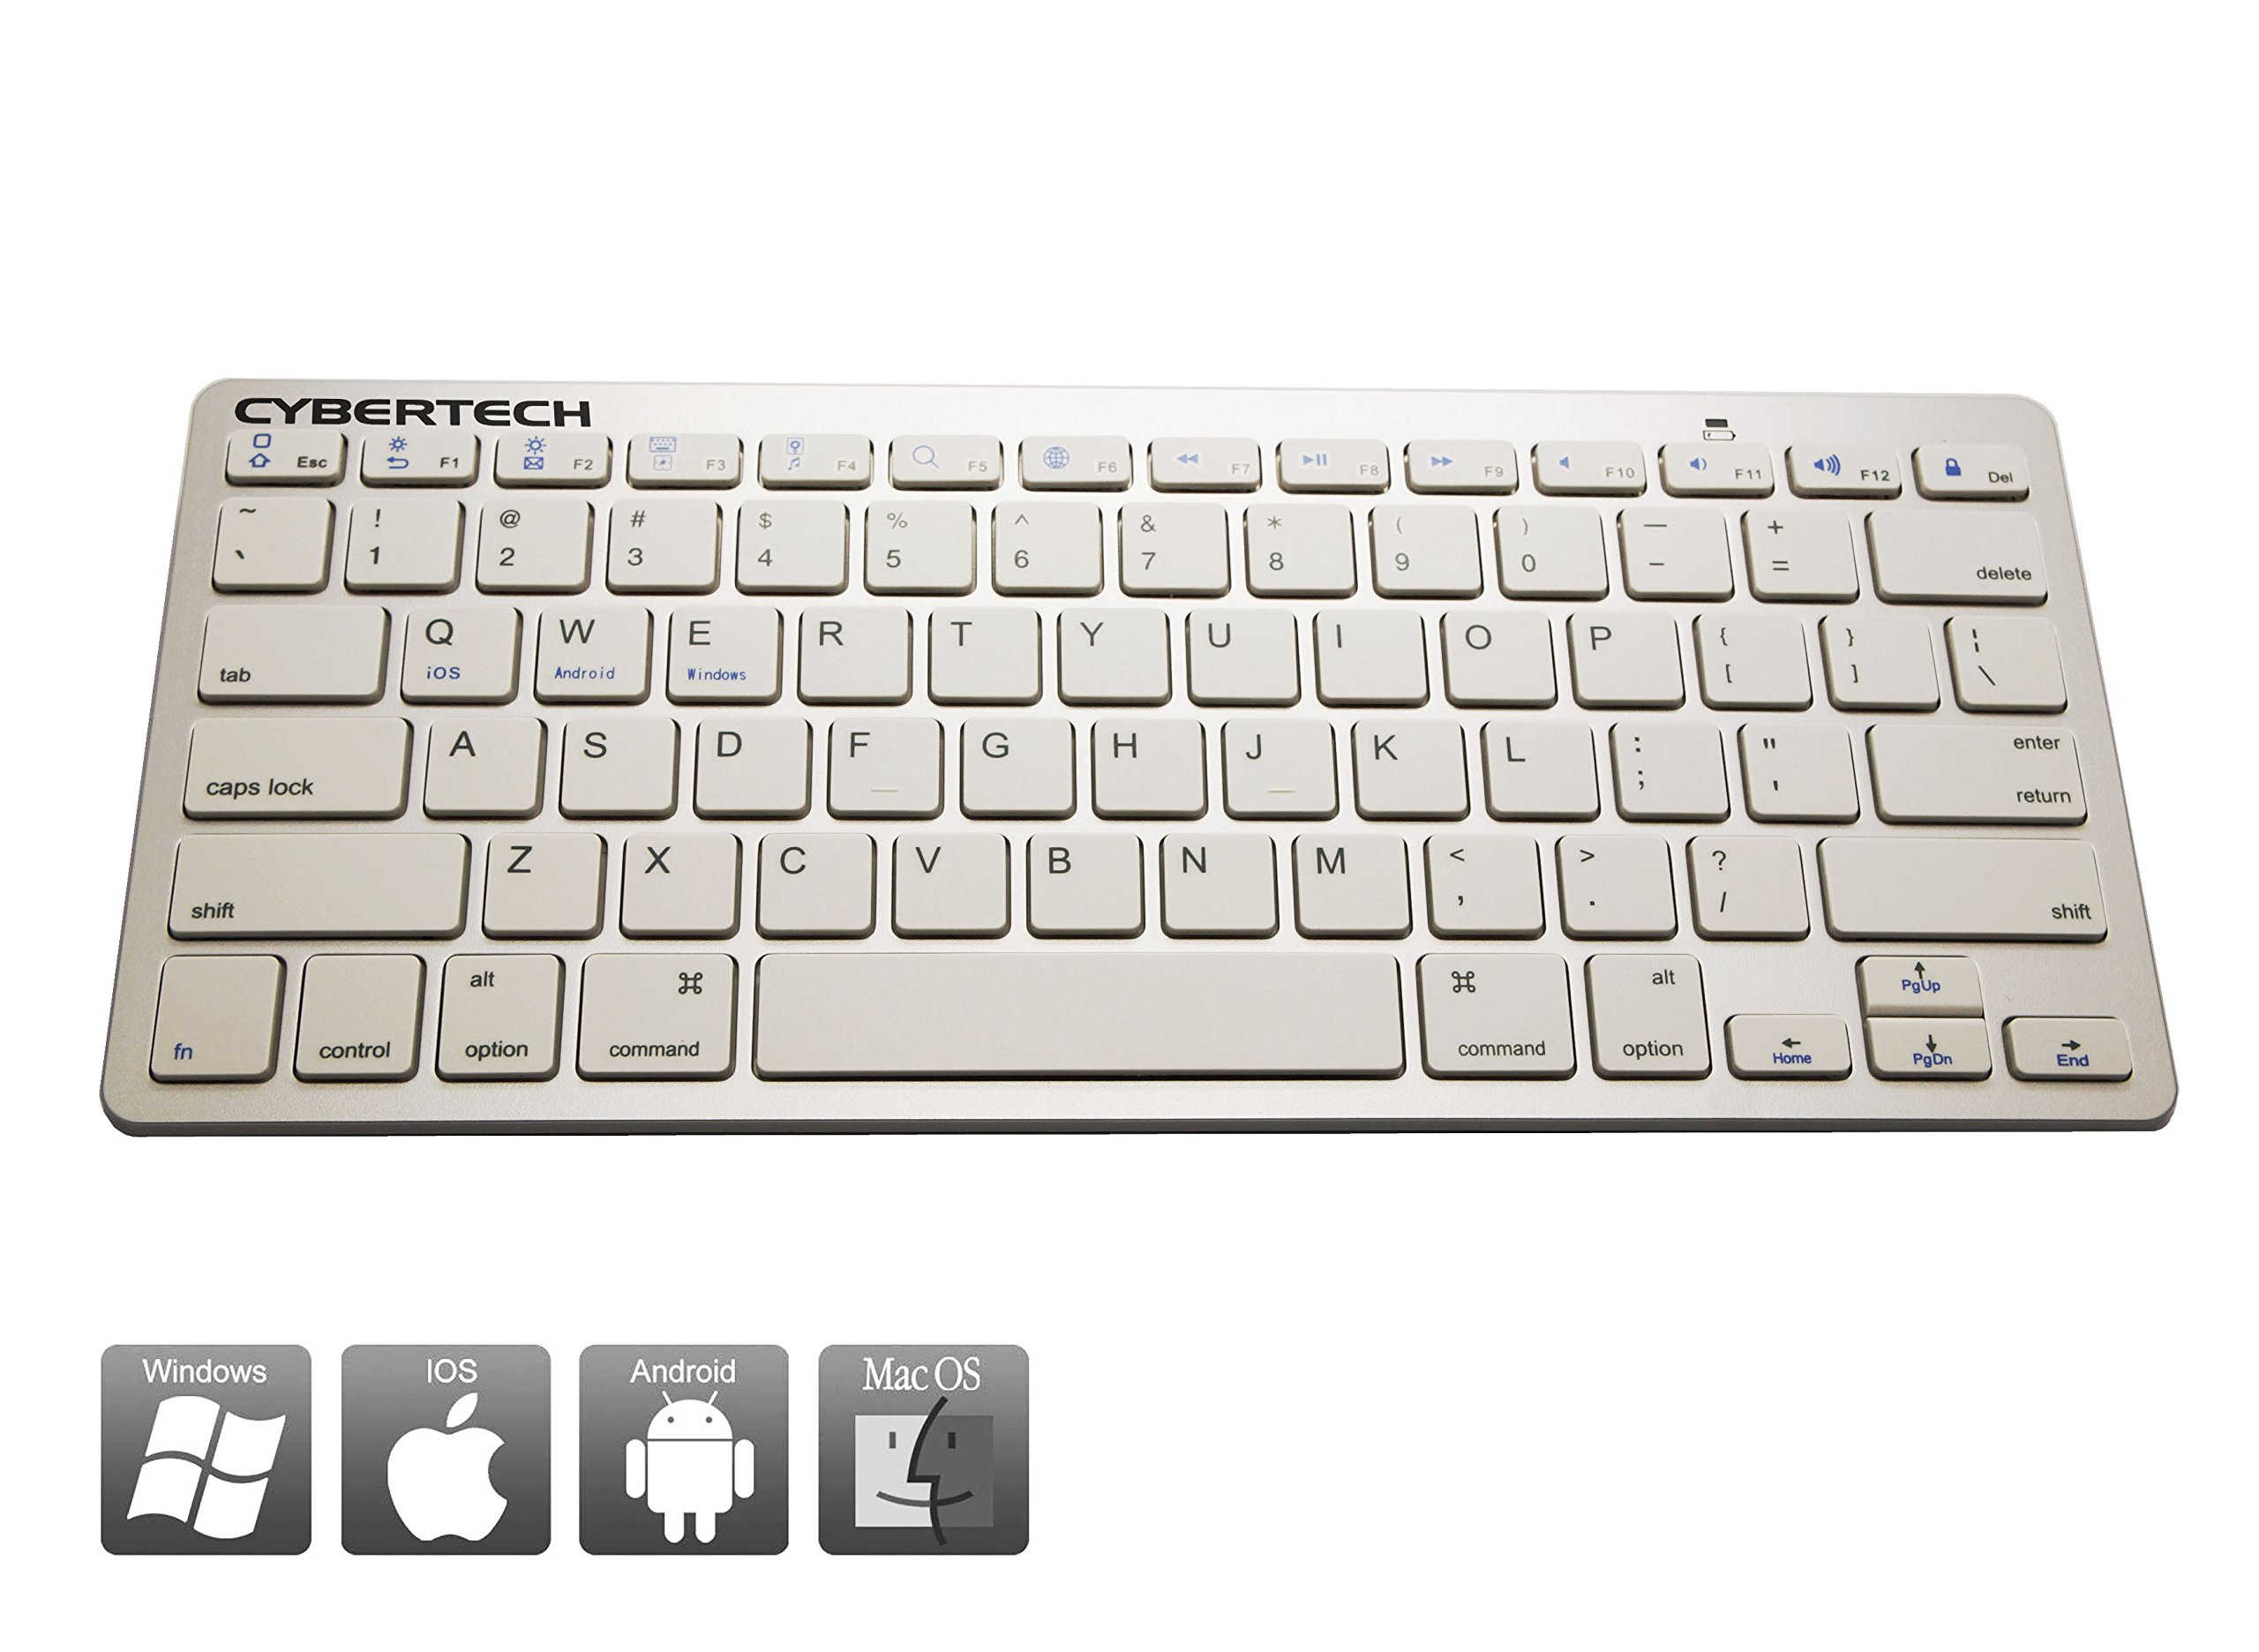 CyberTech Bluetooth Ultra-Thin Keyboard for iPad Air/Air 2,iPad Pro,iPad mini 1/2/3/4,iPad 2/3/4, Galaxy Tablets,Windows Tablets,and Other Mobile Devices,For IOS,Andriod,Windows System(WHITE)